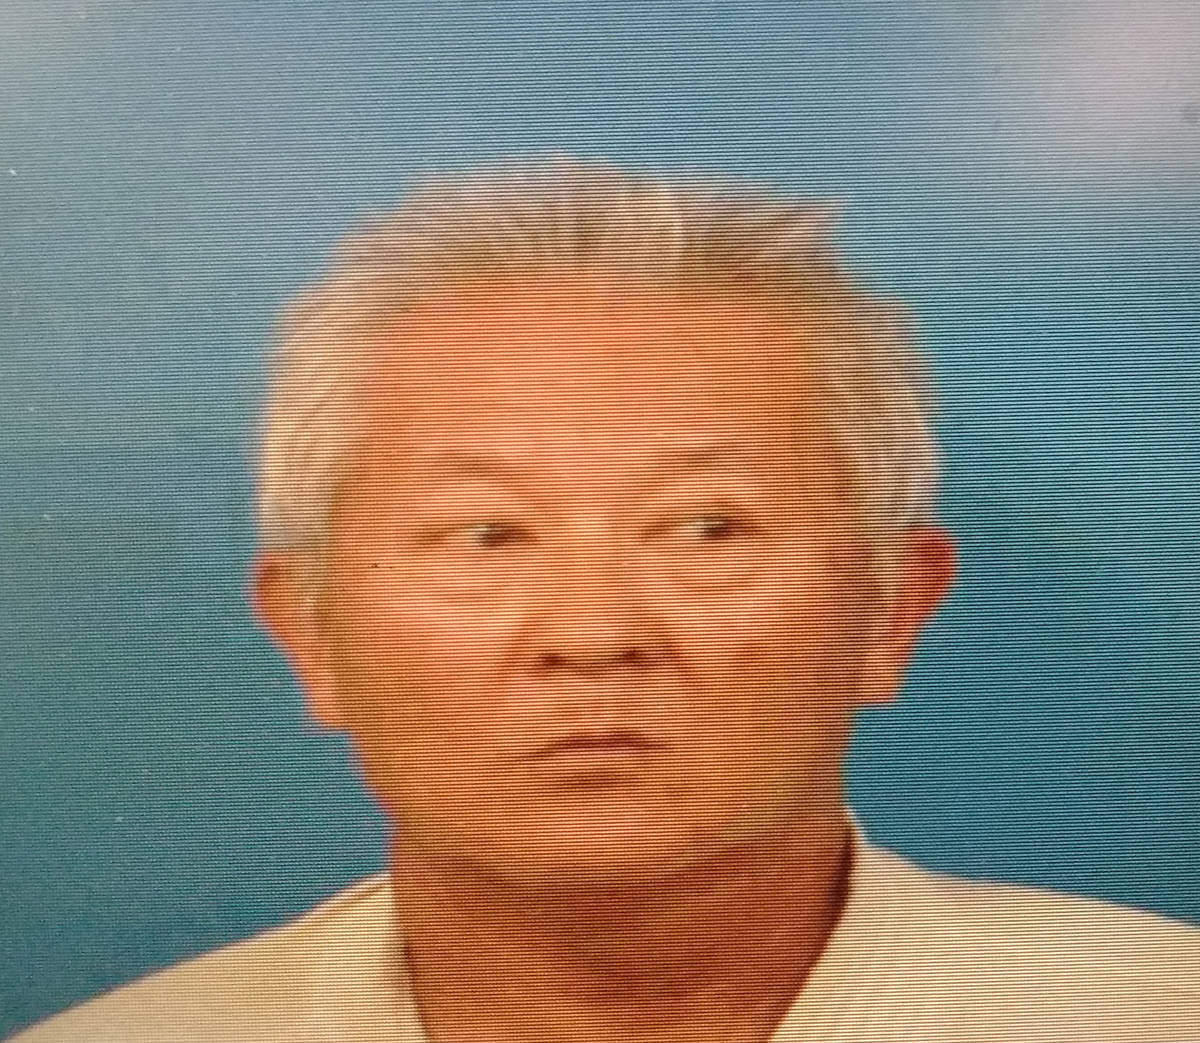 Special to the Pahrump Valley Times Nye County resident Phillip Peng will be arraigned in Distr ...